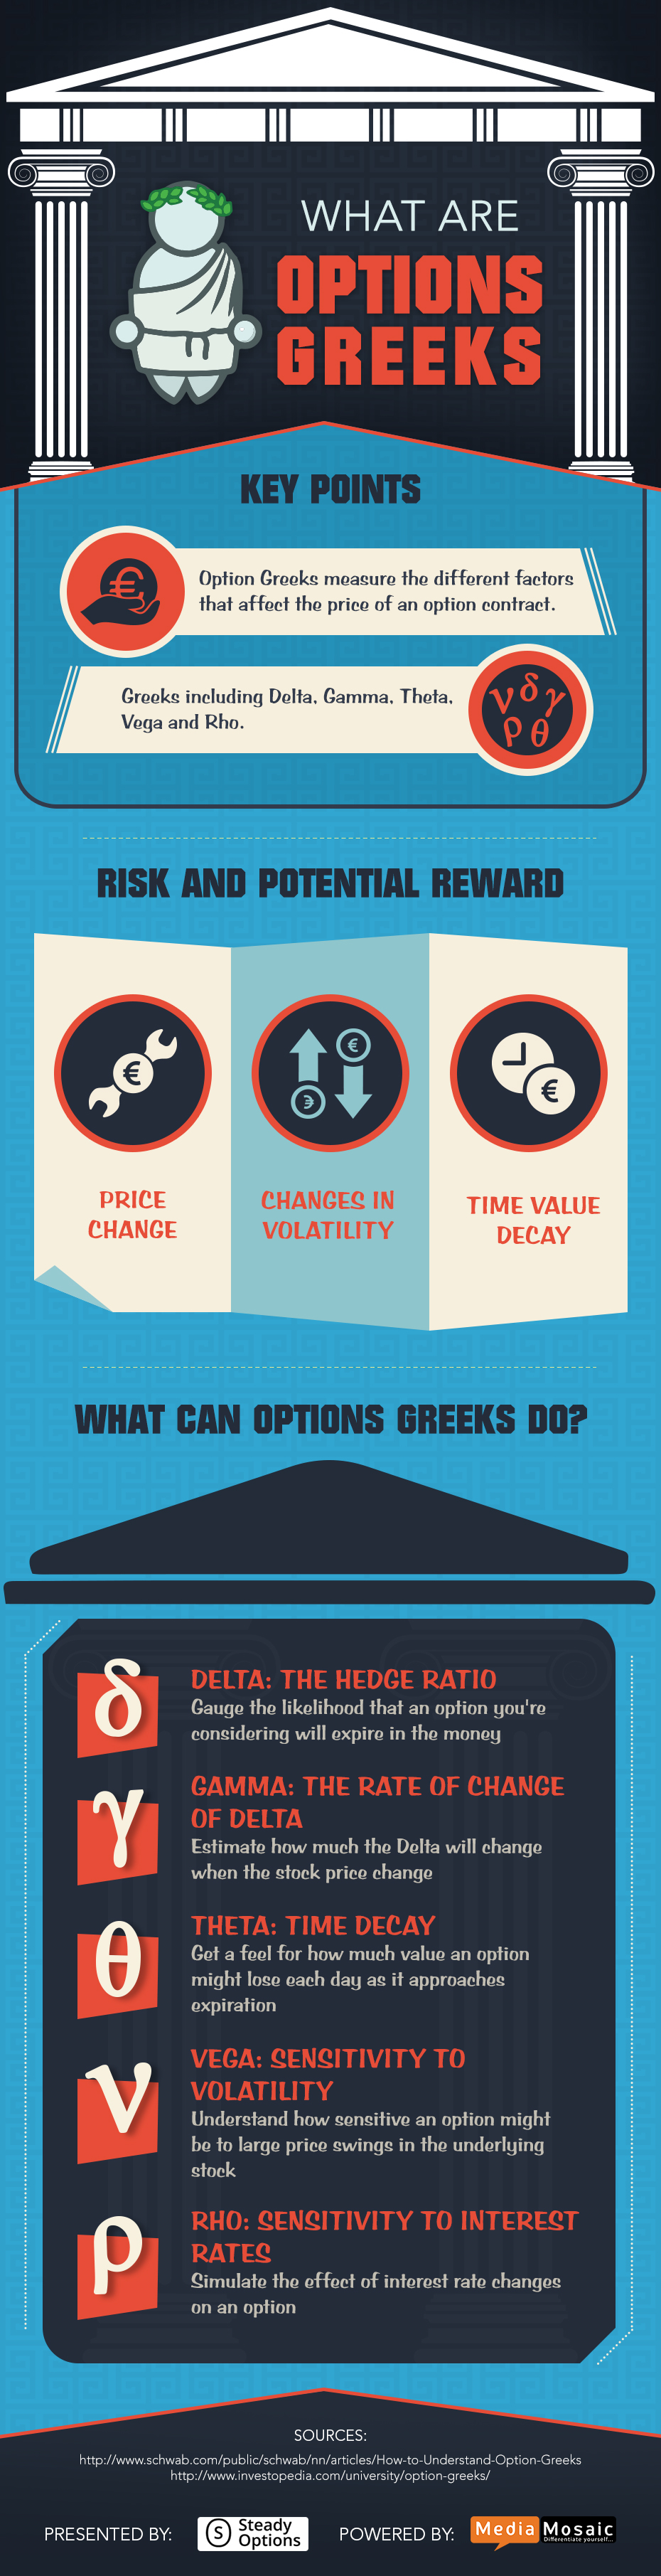 Infographic-Options_Greeks.jpg